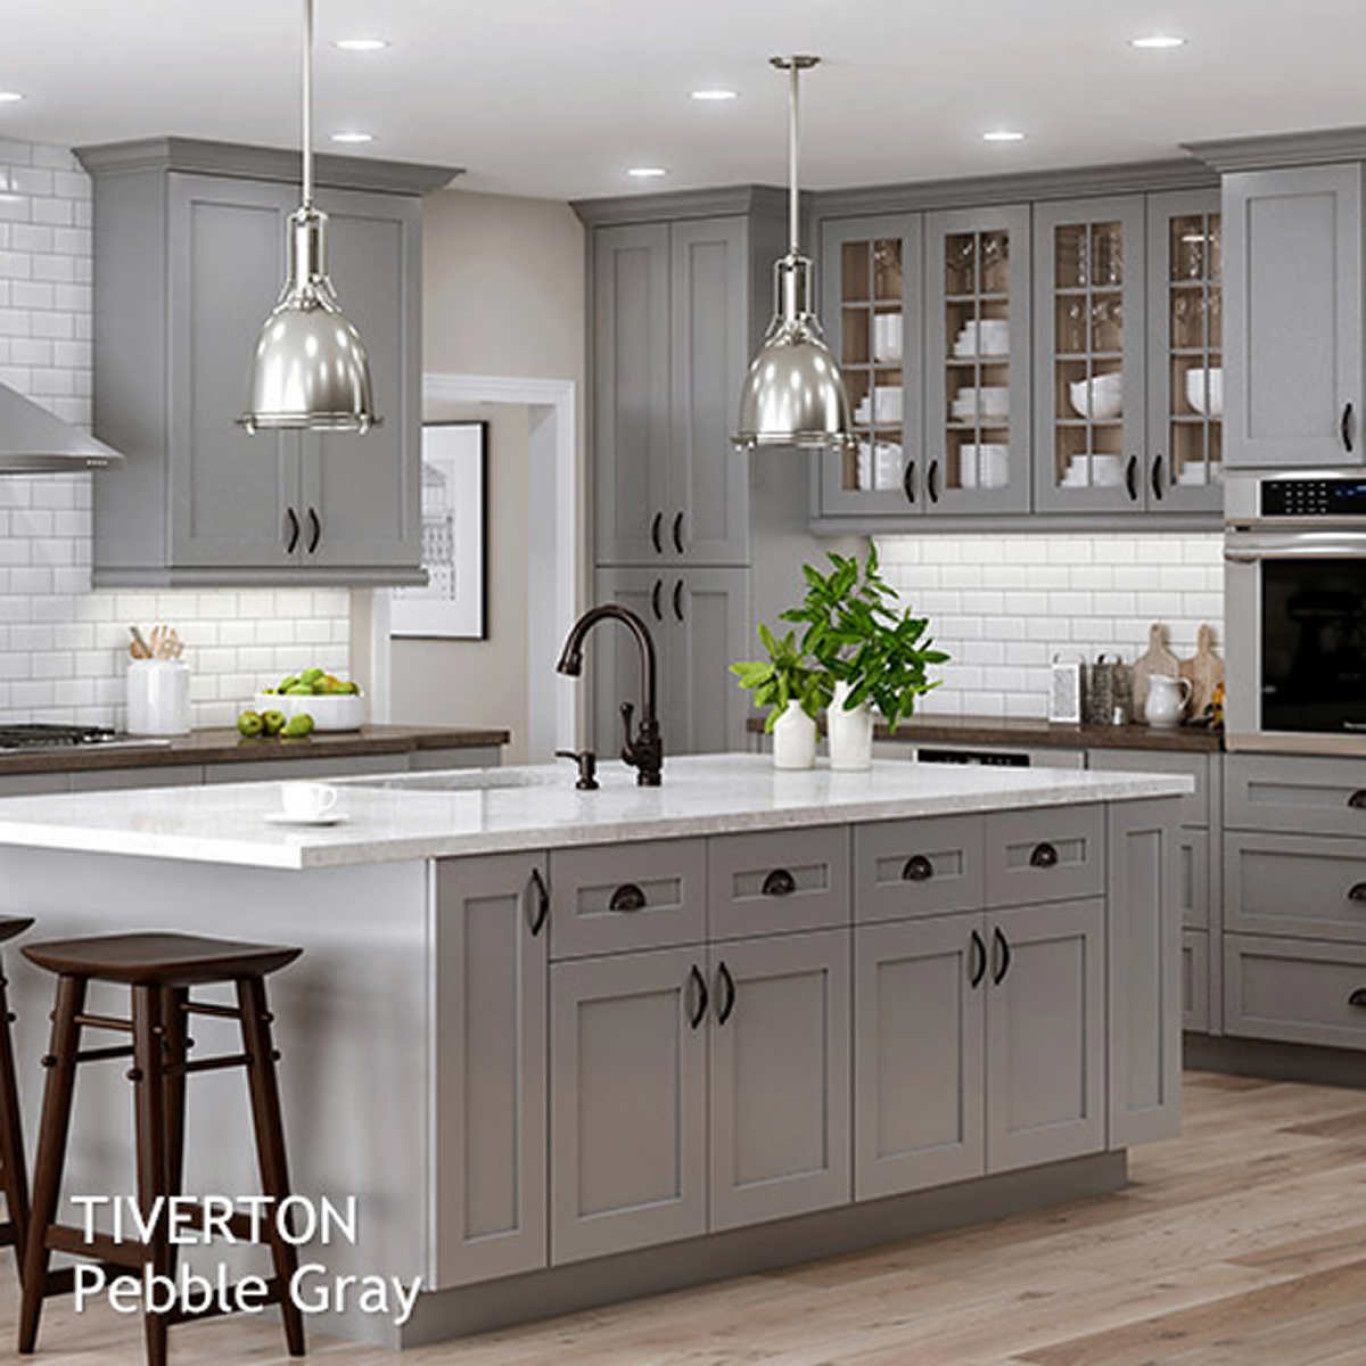 2019 Prefab Quartz Countertops Bay area - Kitchen Cabinets ...